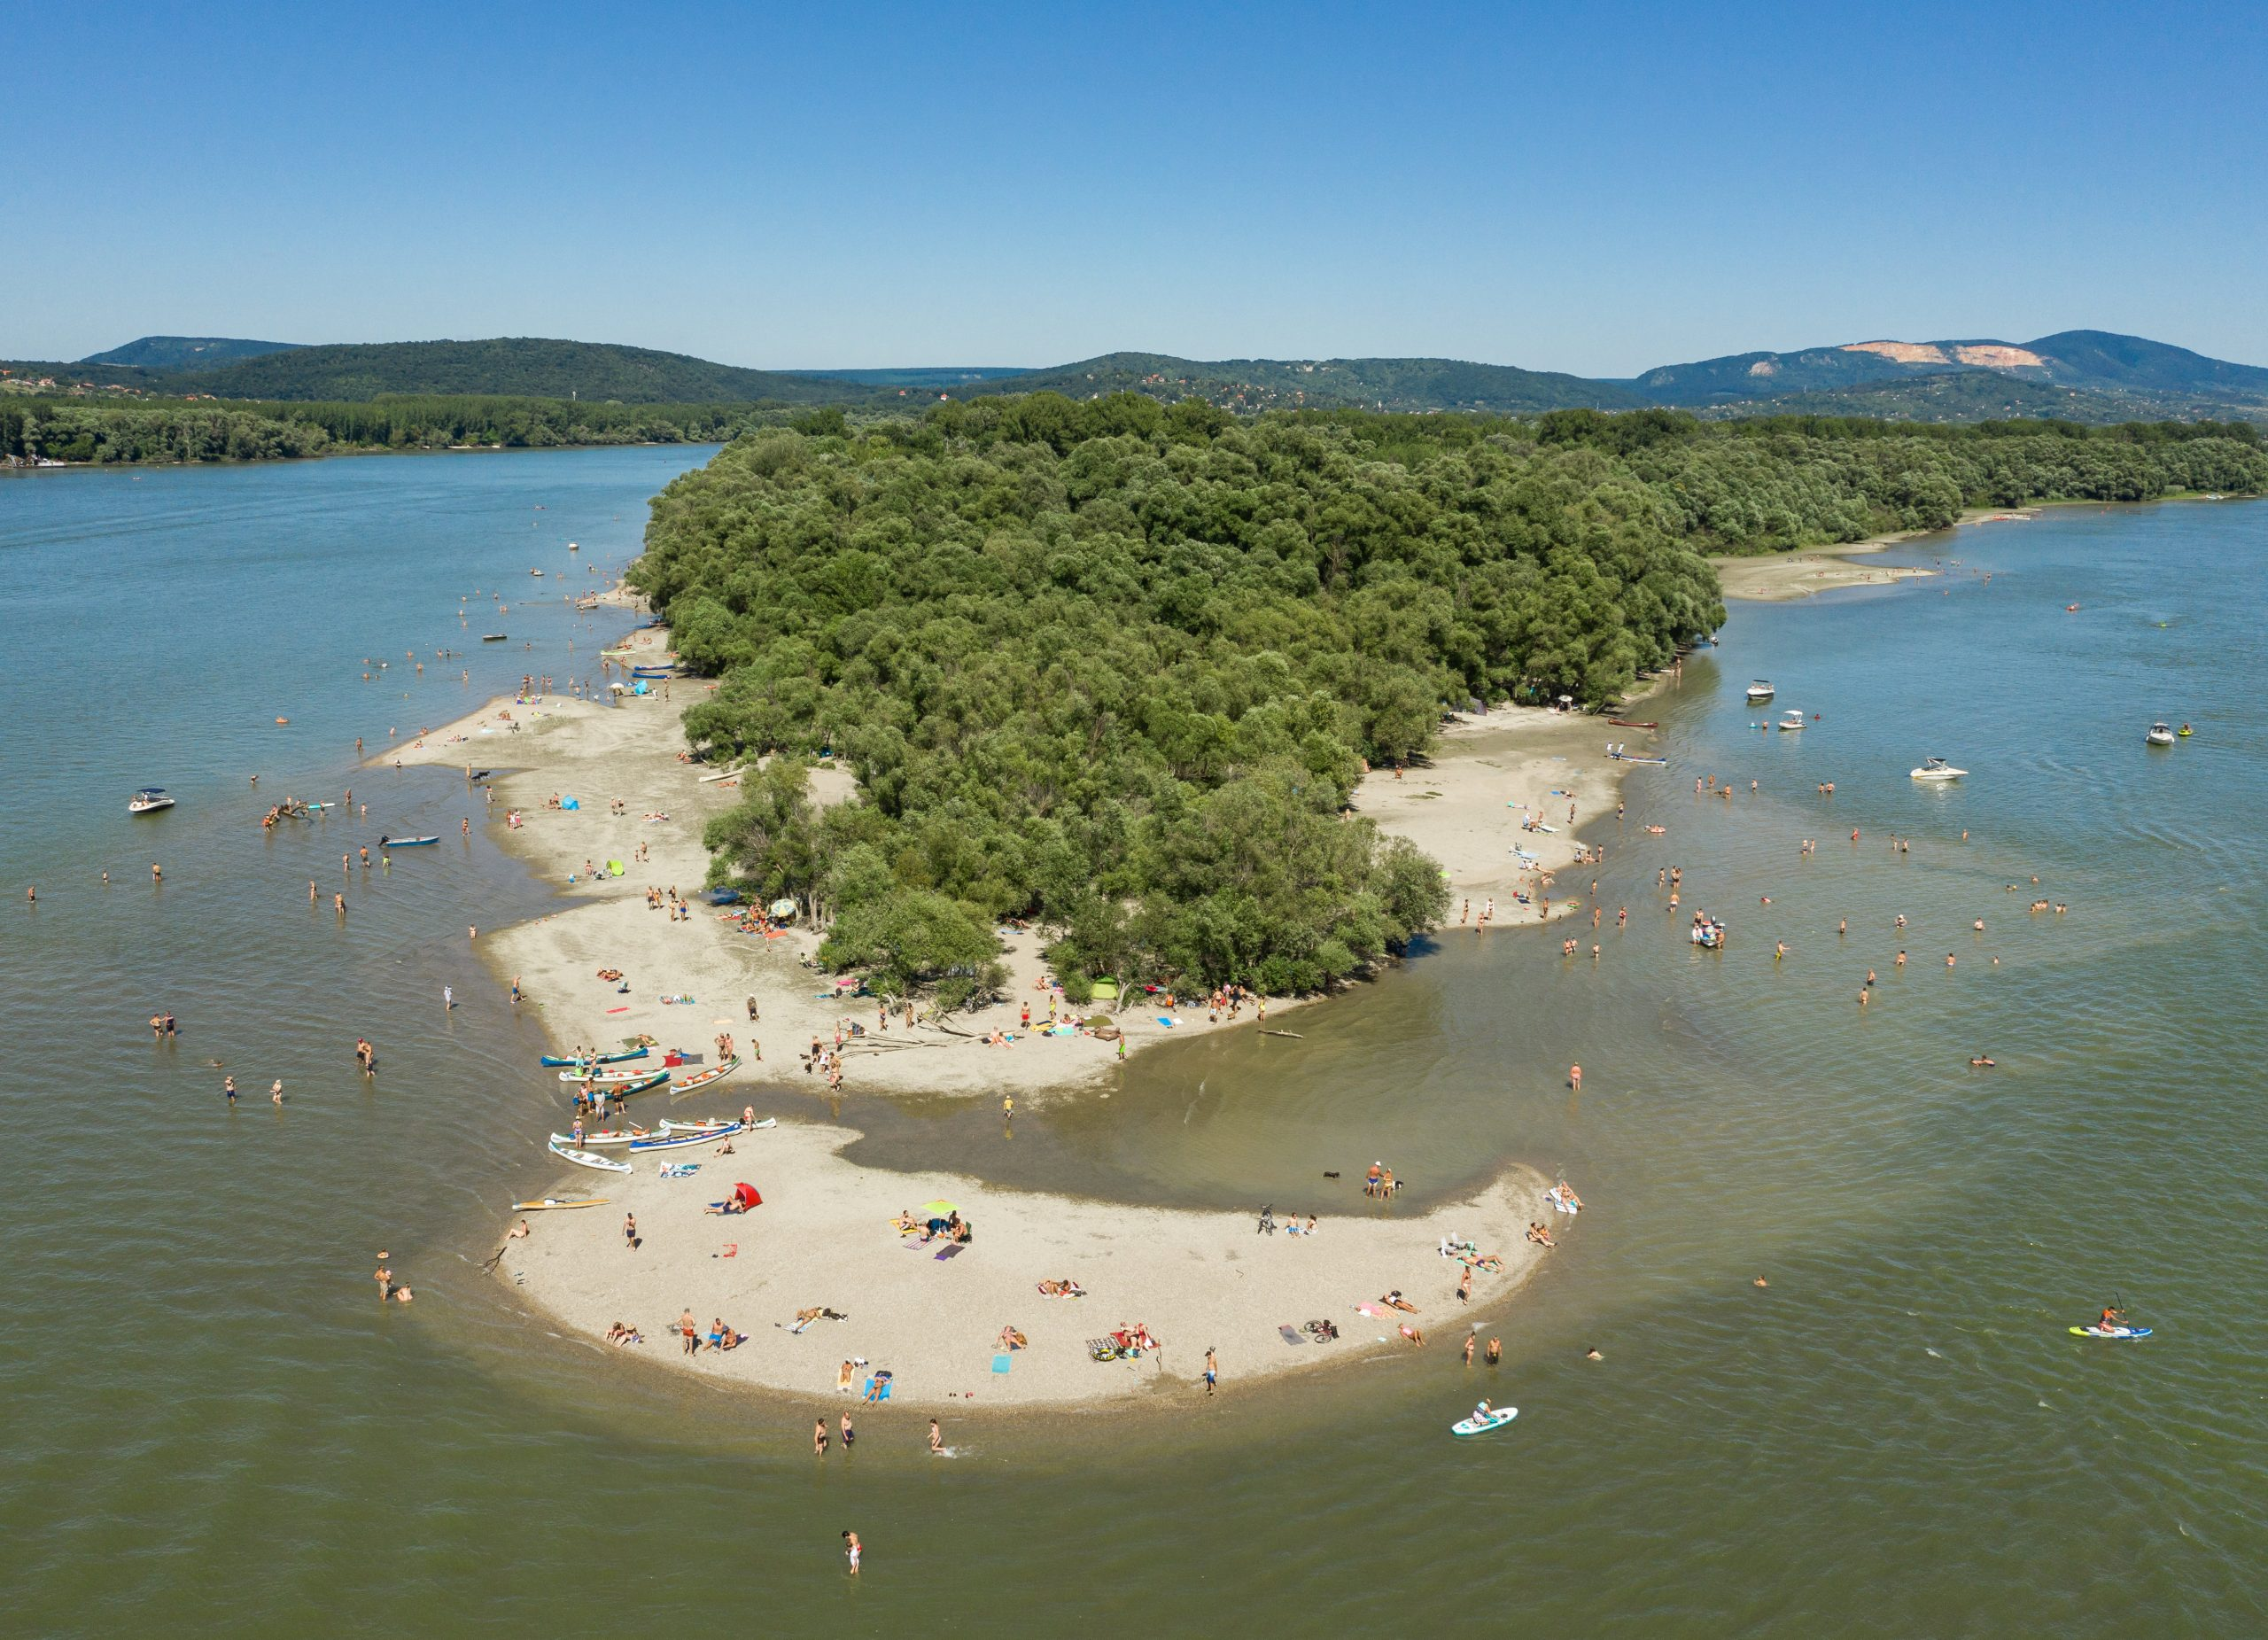 Bathing in Danube Only Allowed at Designated Free Beaches, Police Warn